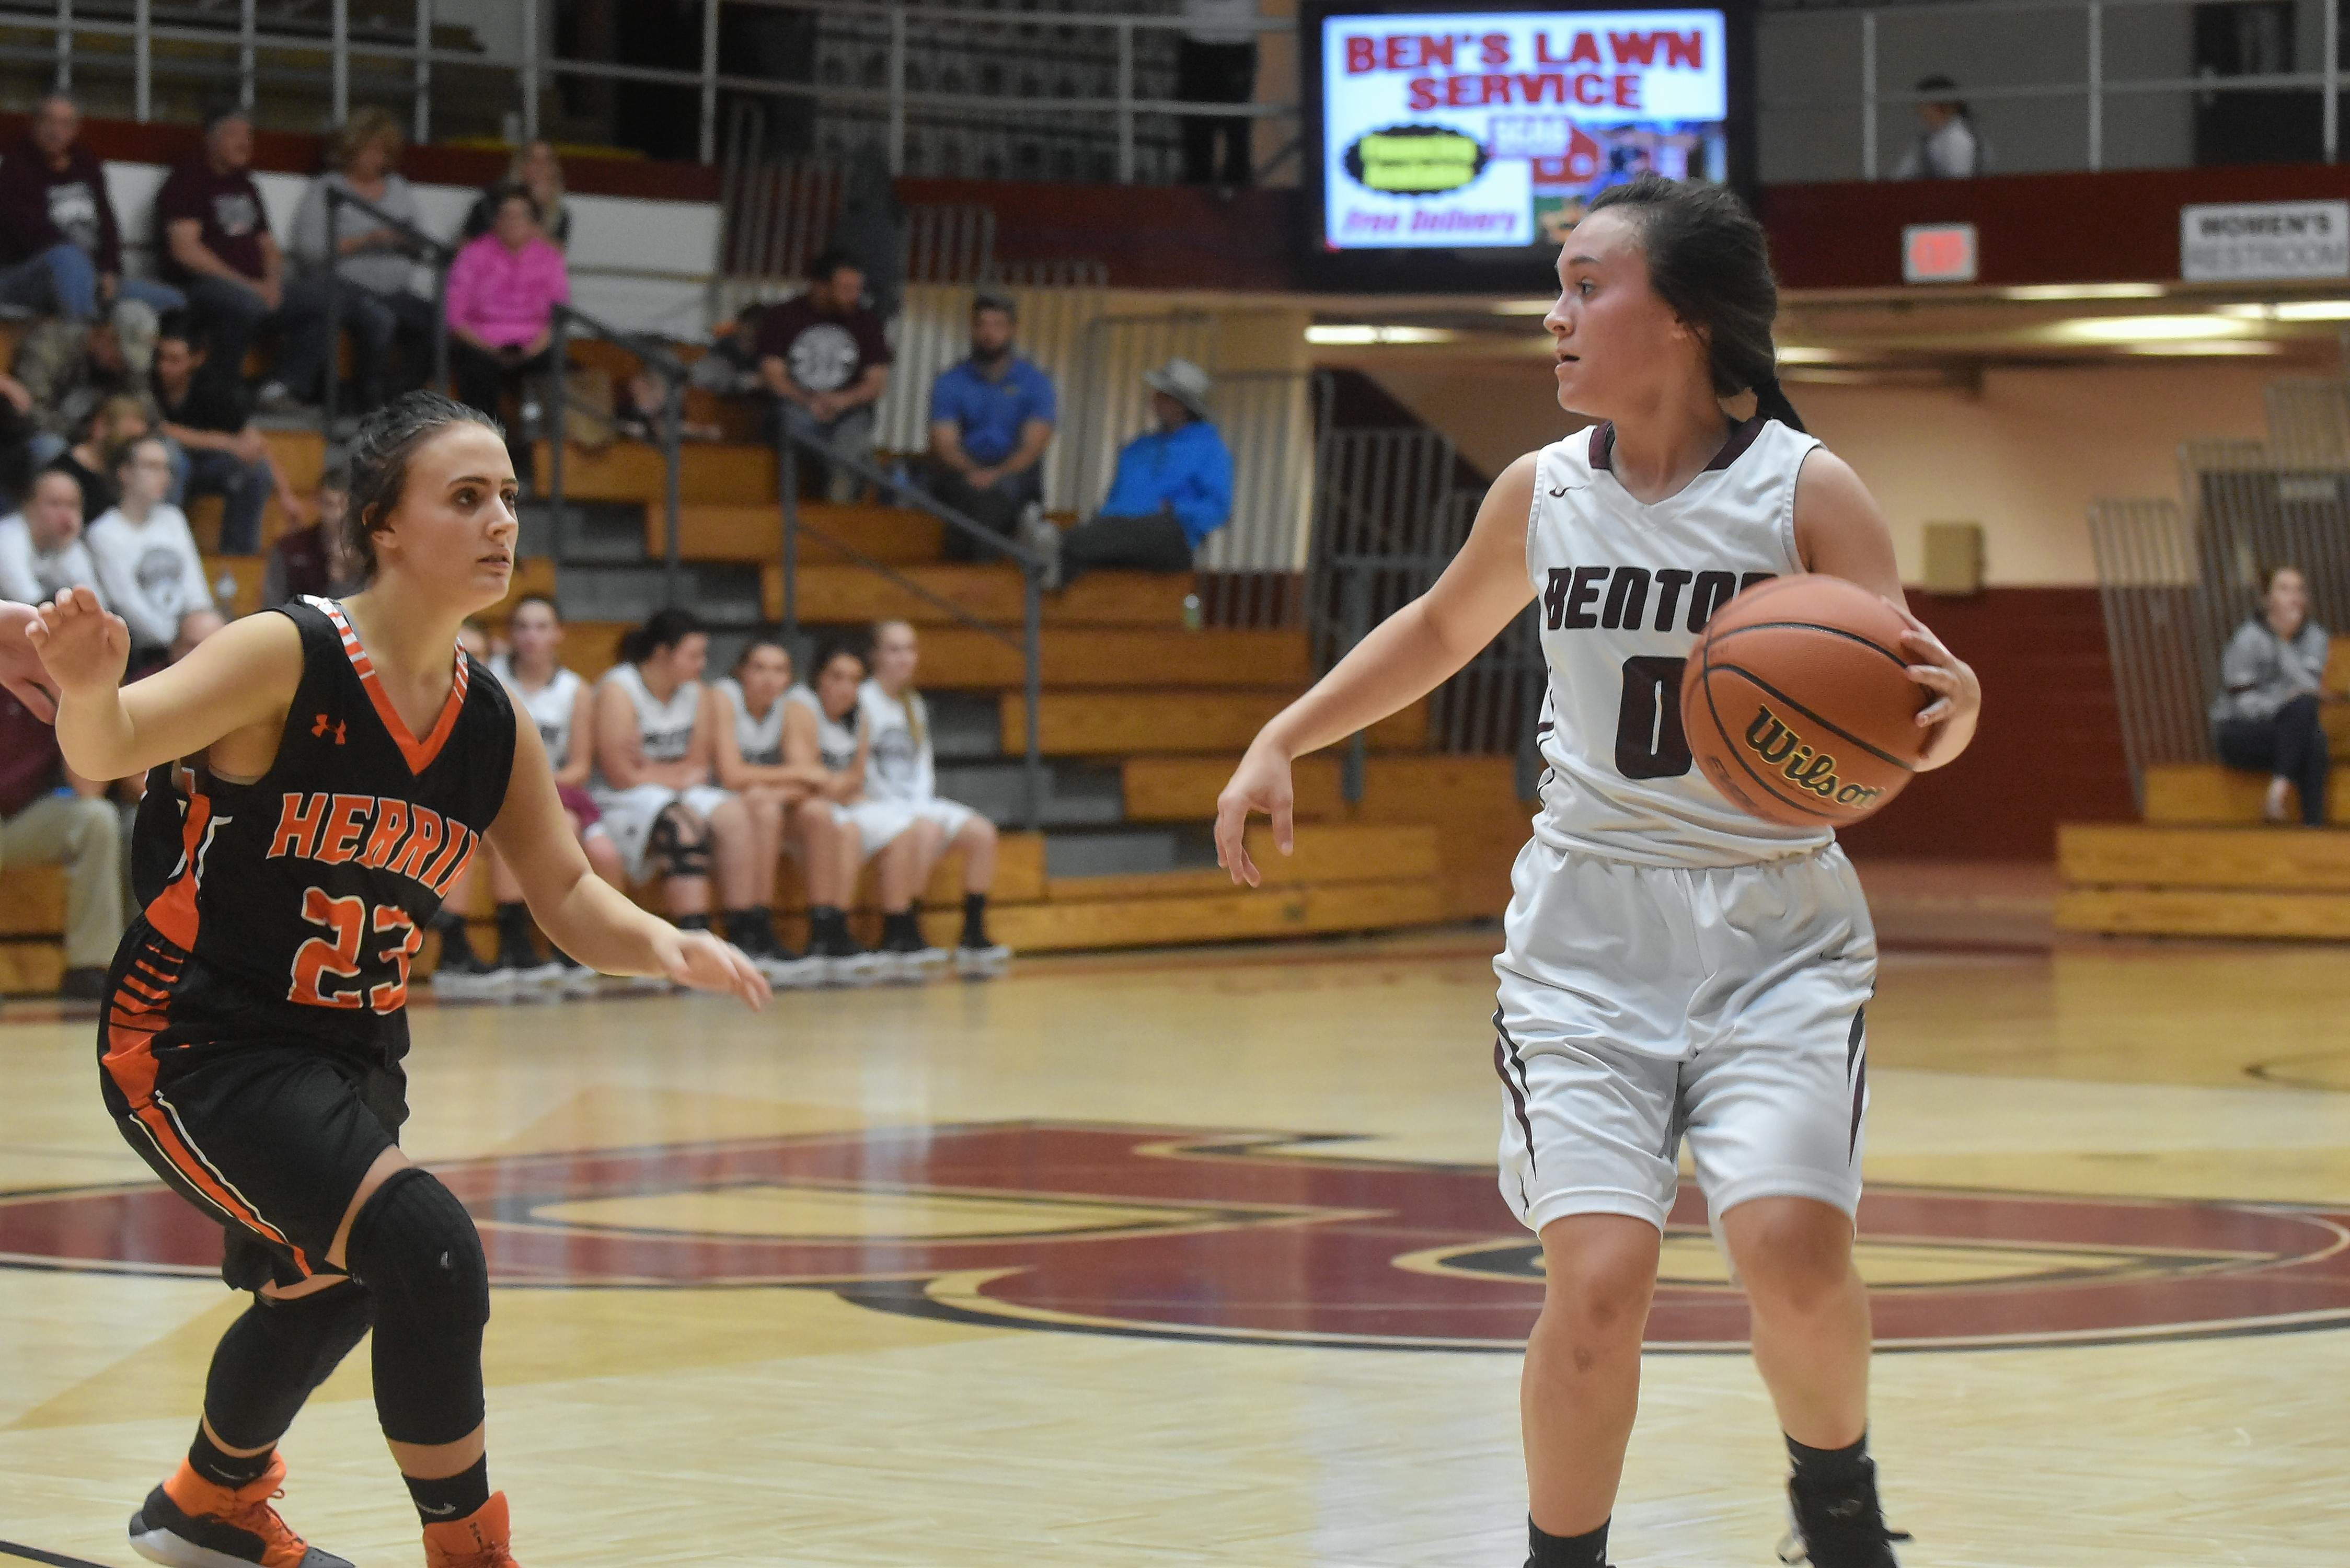 Benton's Eb Casey dribbles away from Herrin's Madison Johnston during the Rangerettes home game Tuesday night.